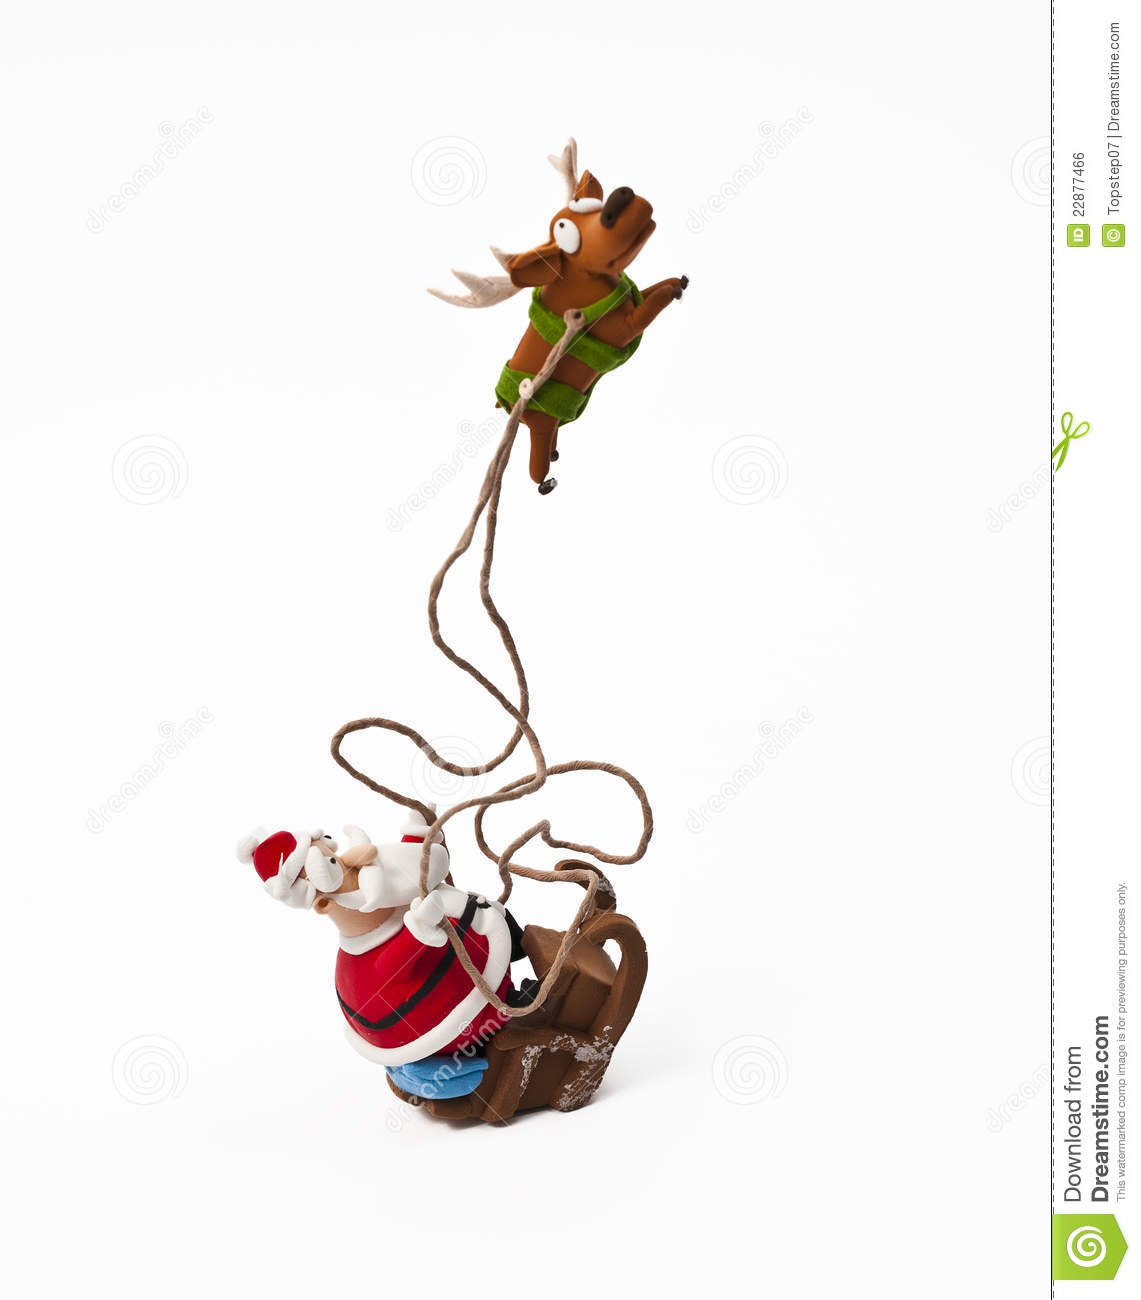 Santa Claus riding on sleigh with one reindeer isolated on white ...